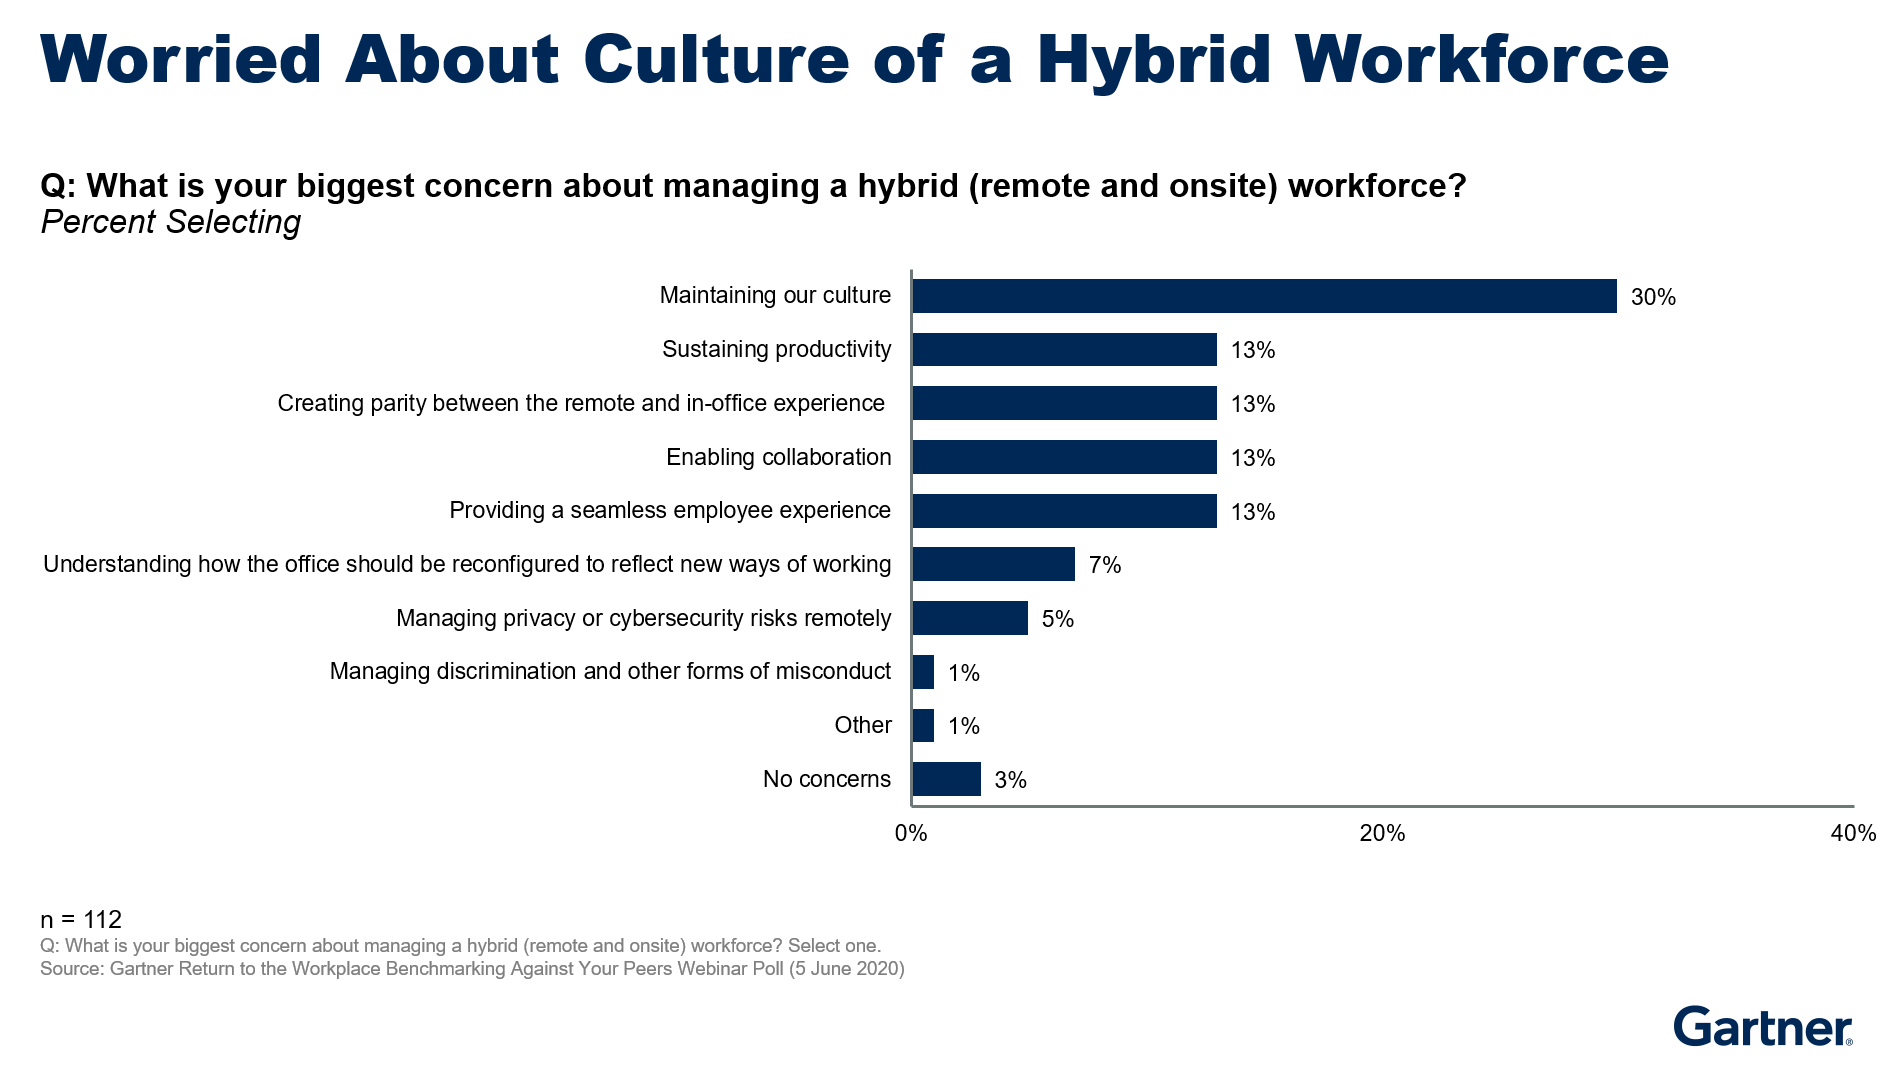 Figure 1. Worried About the Culture of a Hybrid Office